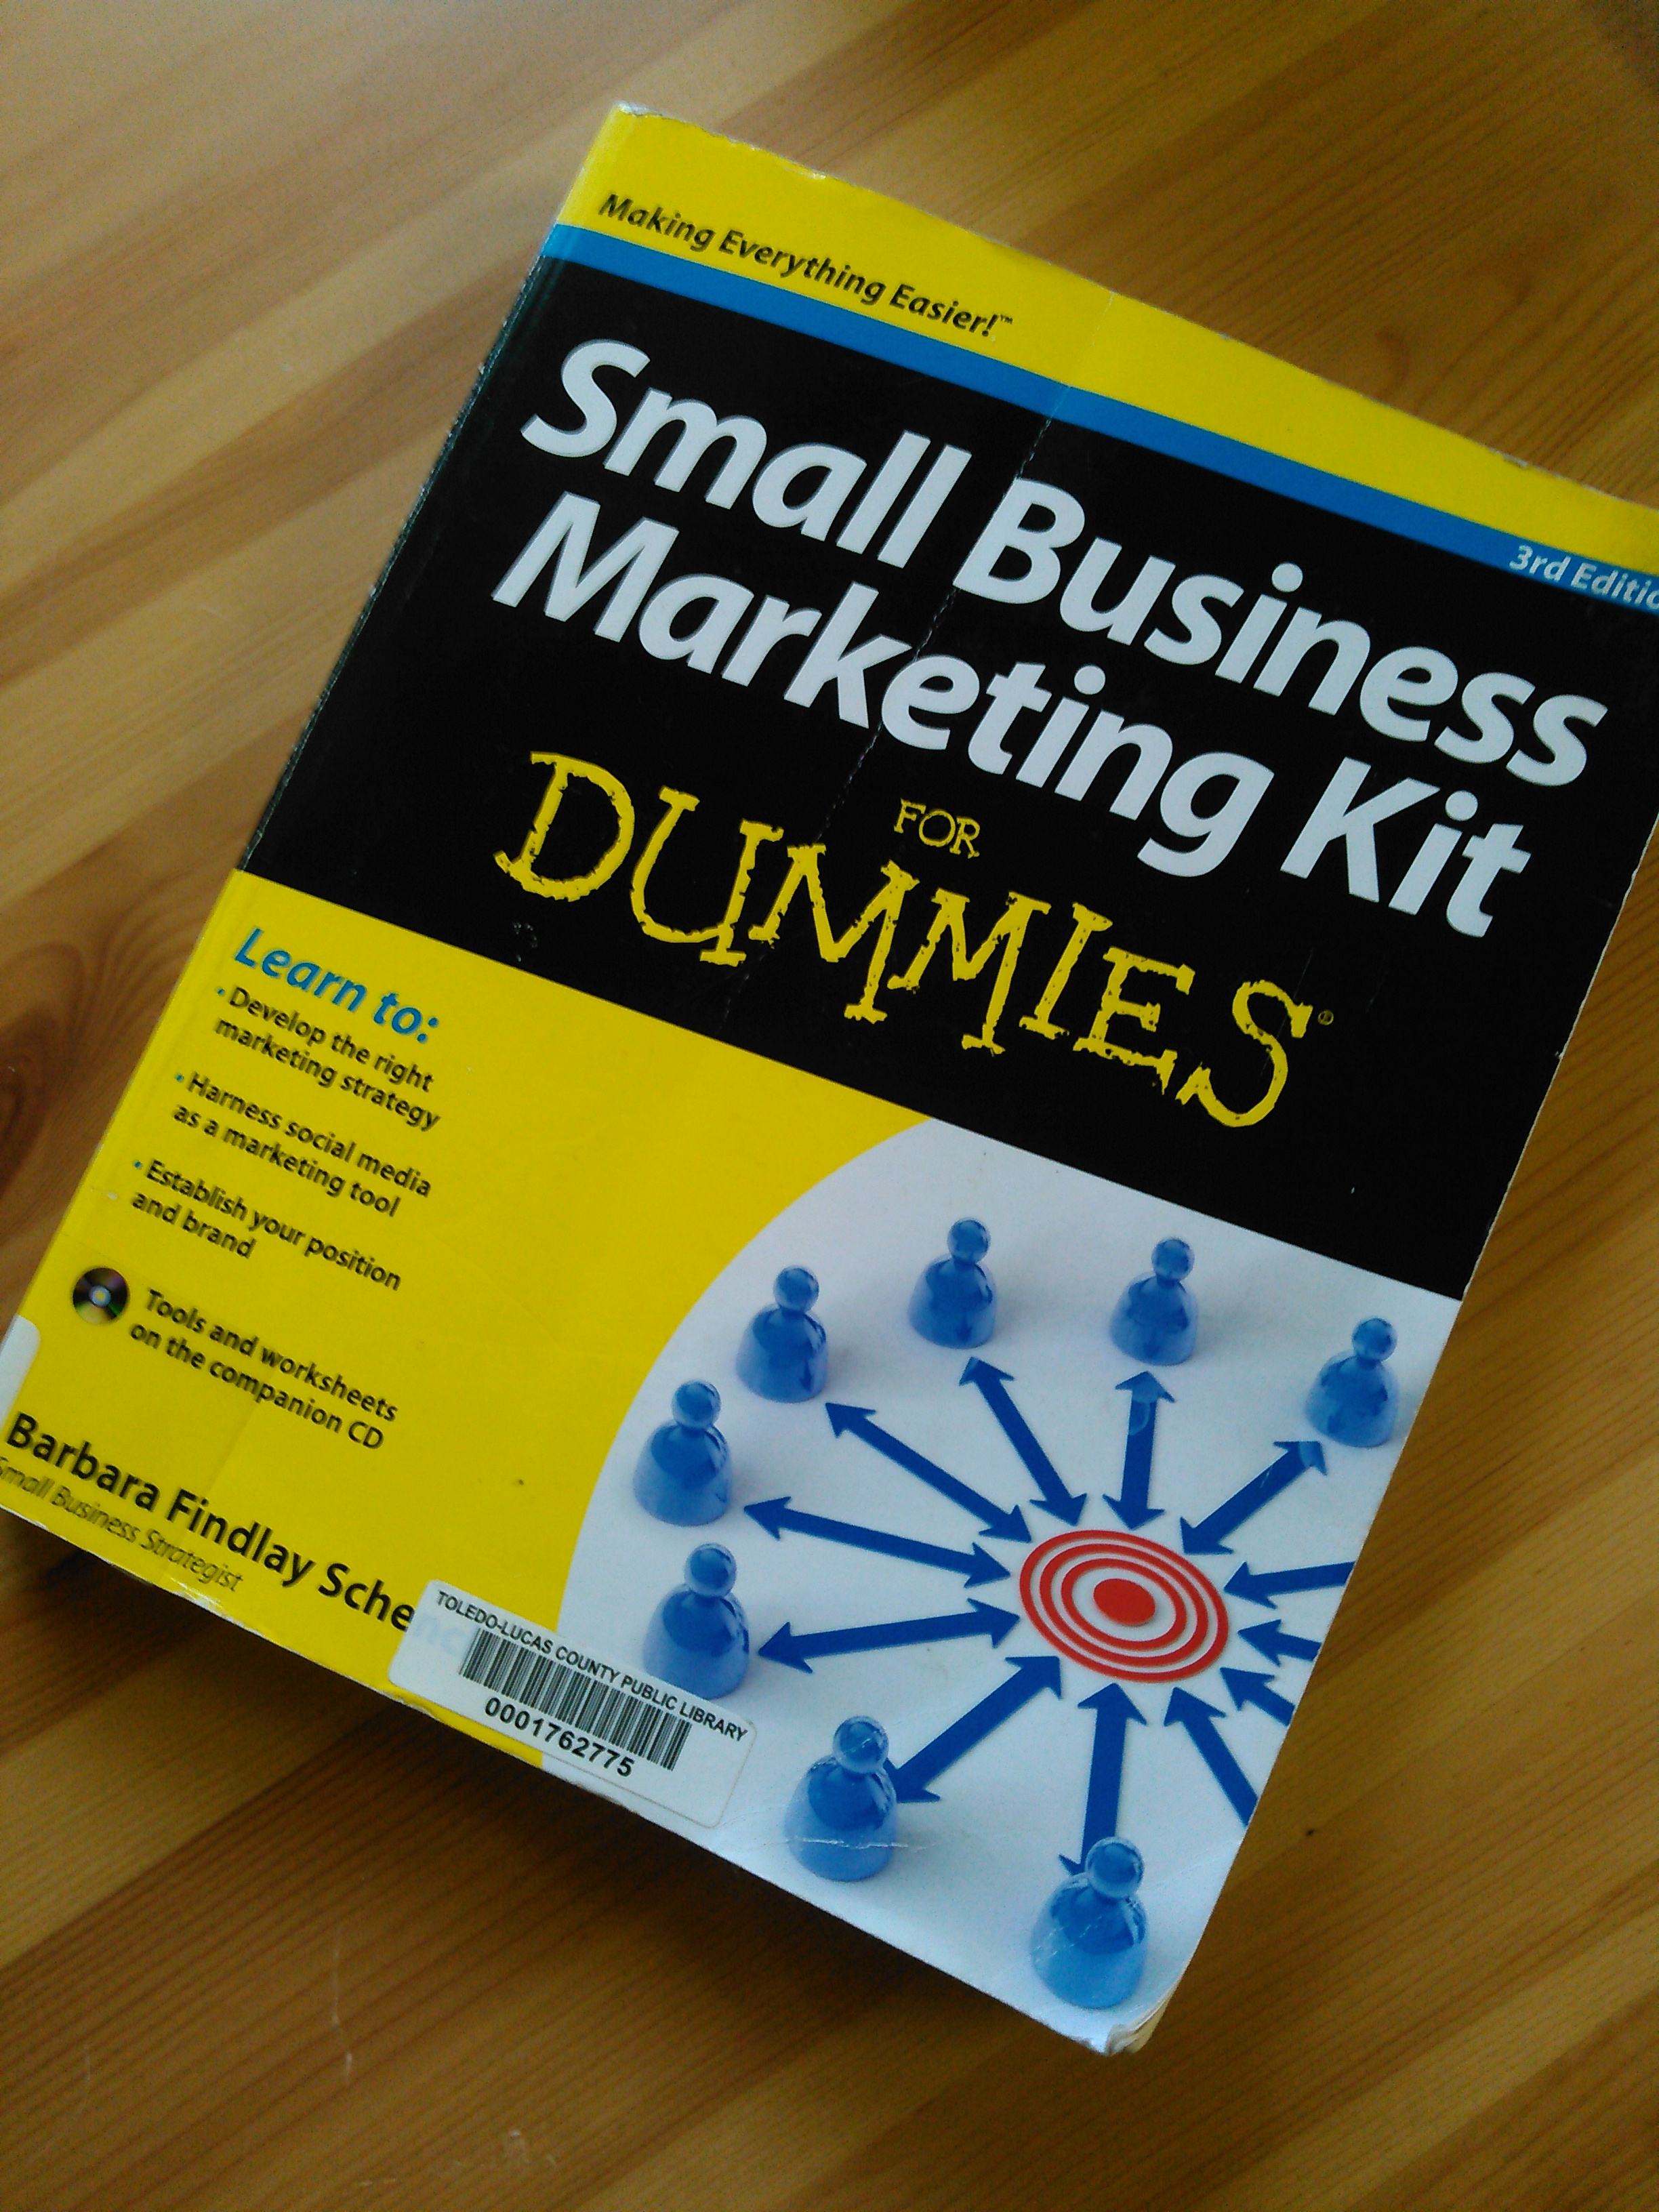 f25b62270ac6 In chapter 1, Schenck gives a simple definition of marketing: the process  through which you win and keep customers. Marketing is such a broad topic,  ...